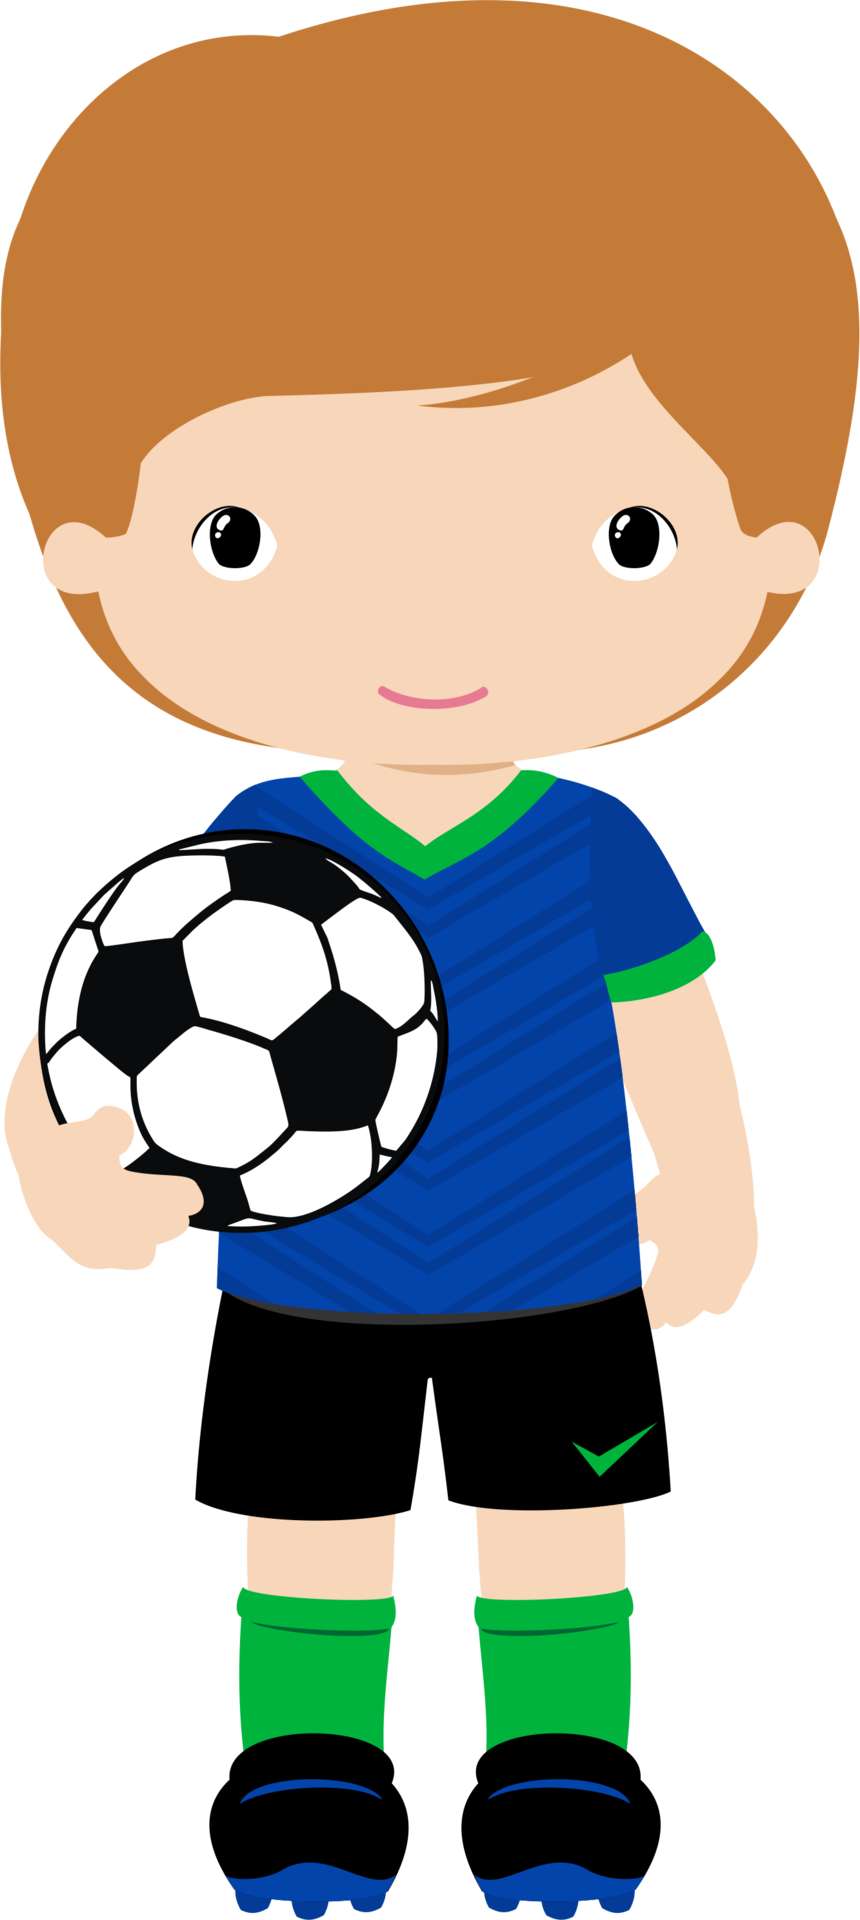 Boys playing football clipart png royalty free library SPORTS & GINÁSTICA | Futebol | Pinterest | Coreldraw, Clip art and Scrap png royalty free library